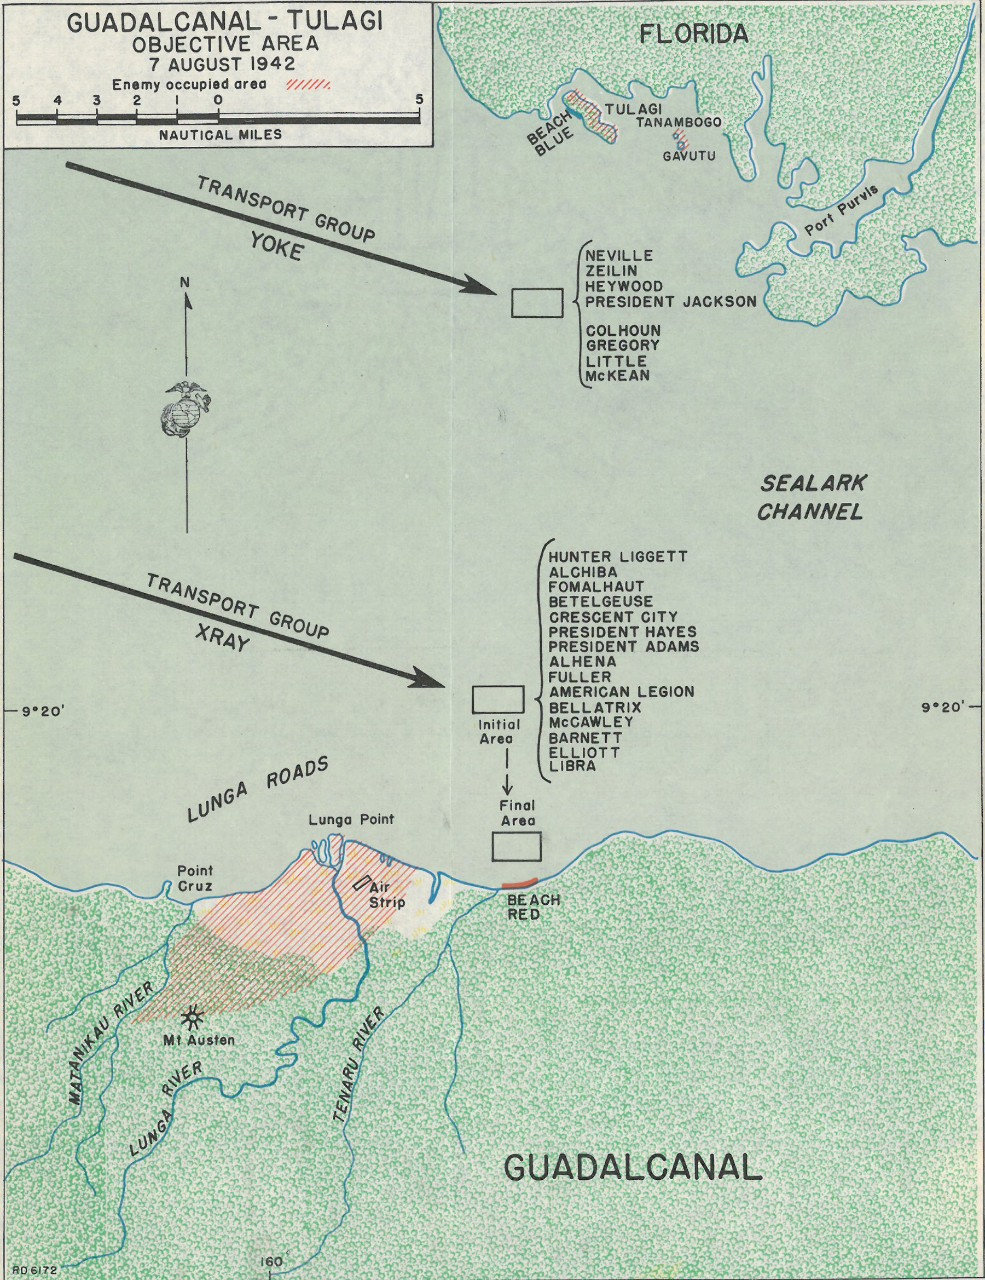 Map 3: Guadalcanal-Tulagi Objective Area